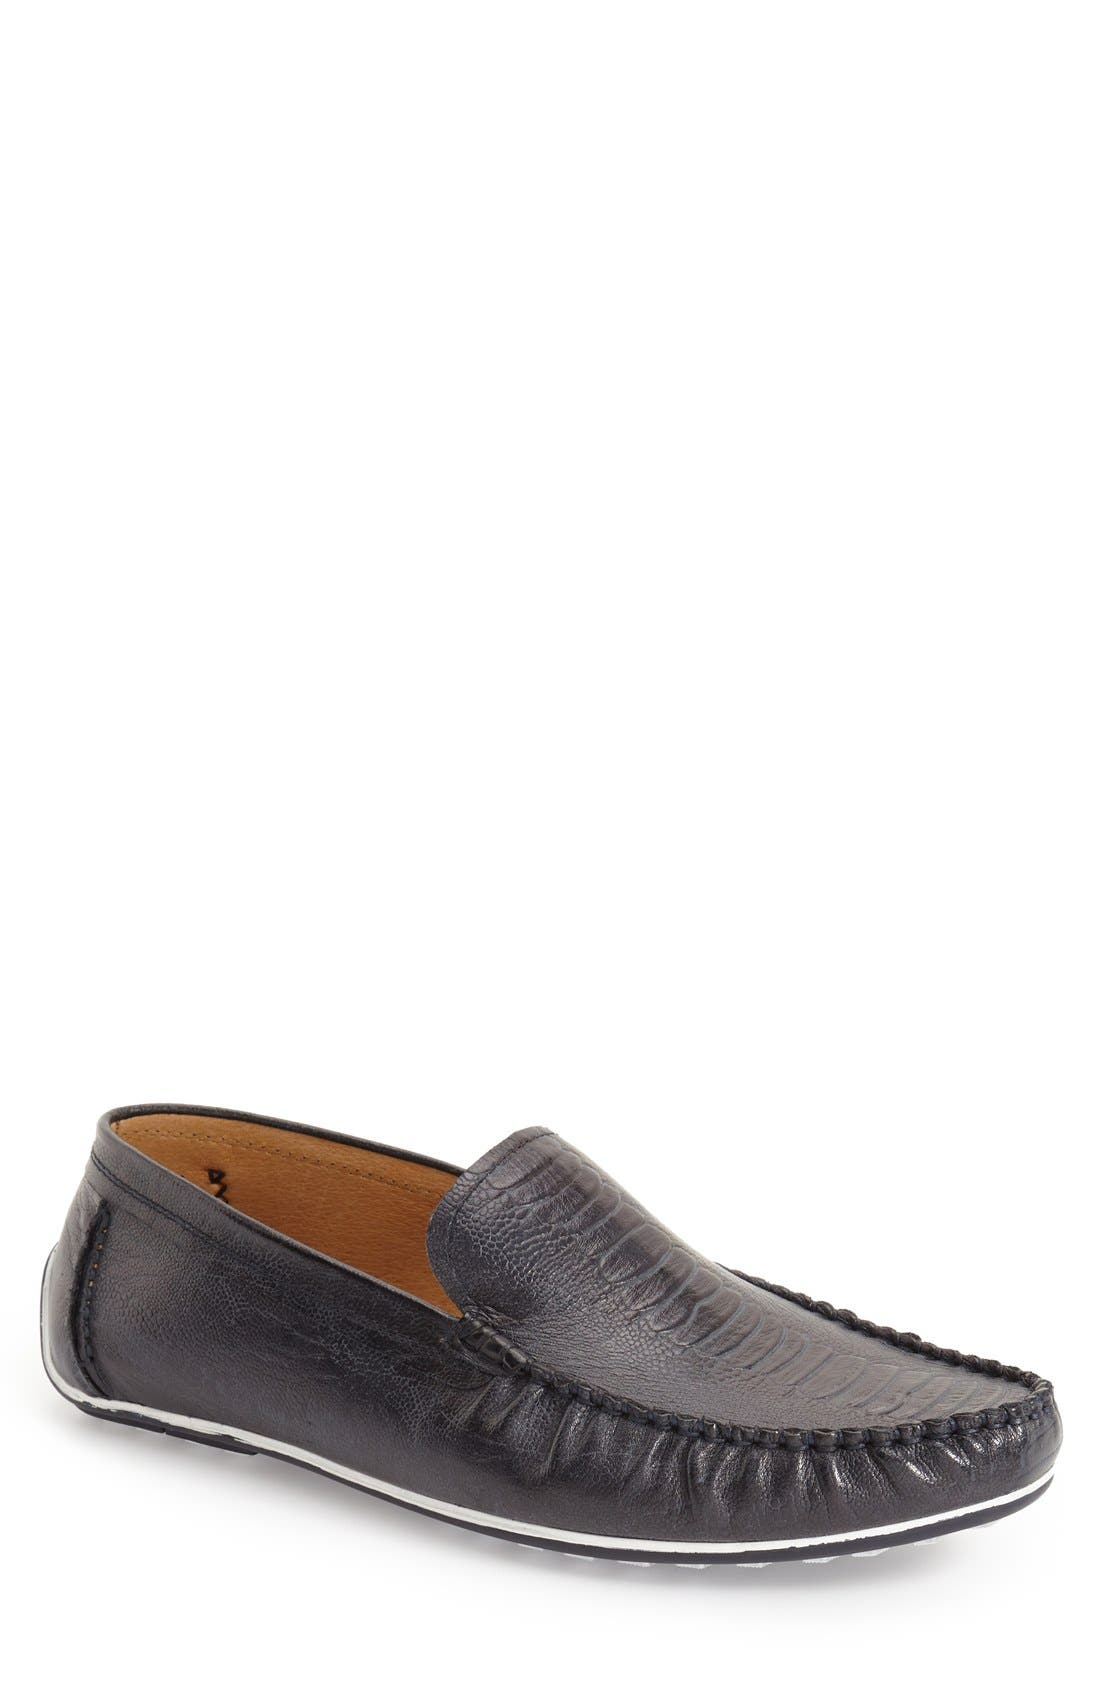 'Rembrandt' Driving Loafer,                             Main thumbnail 1, color,                             Blue Leather